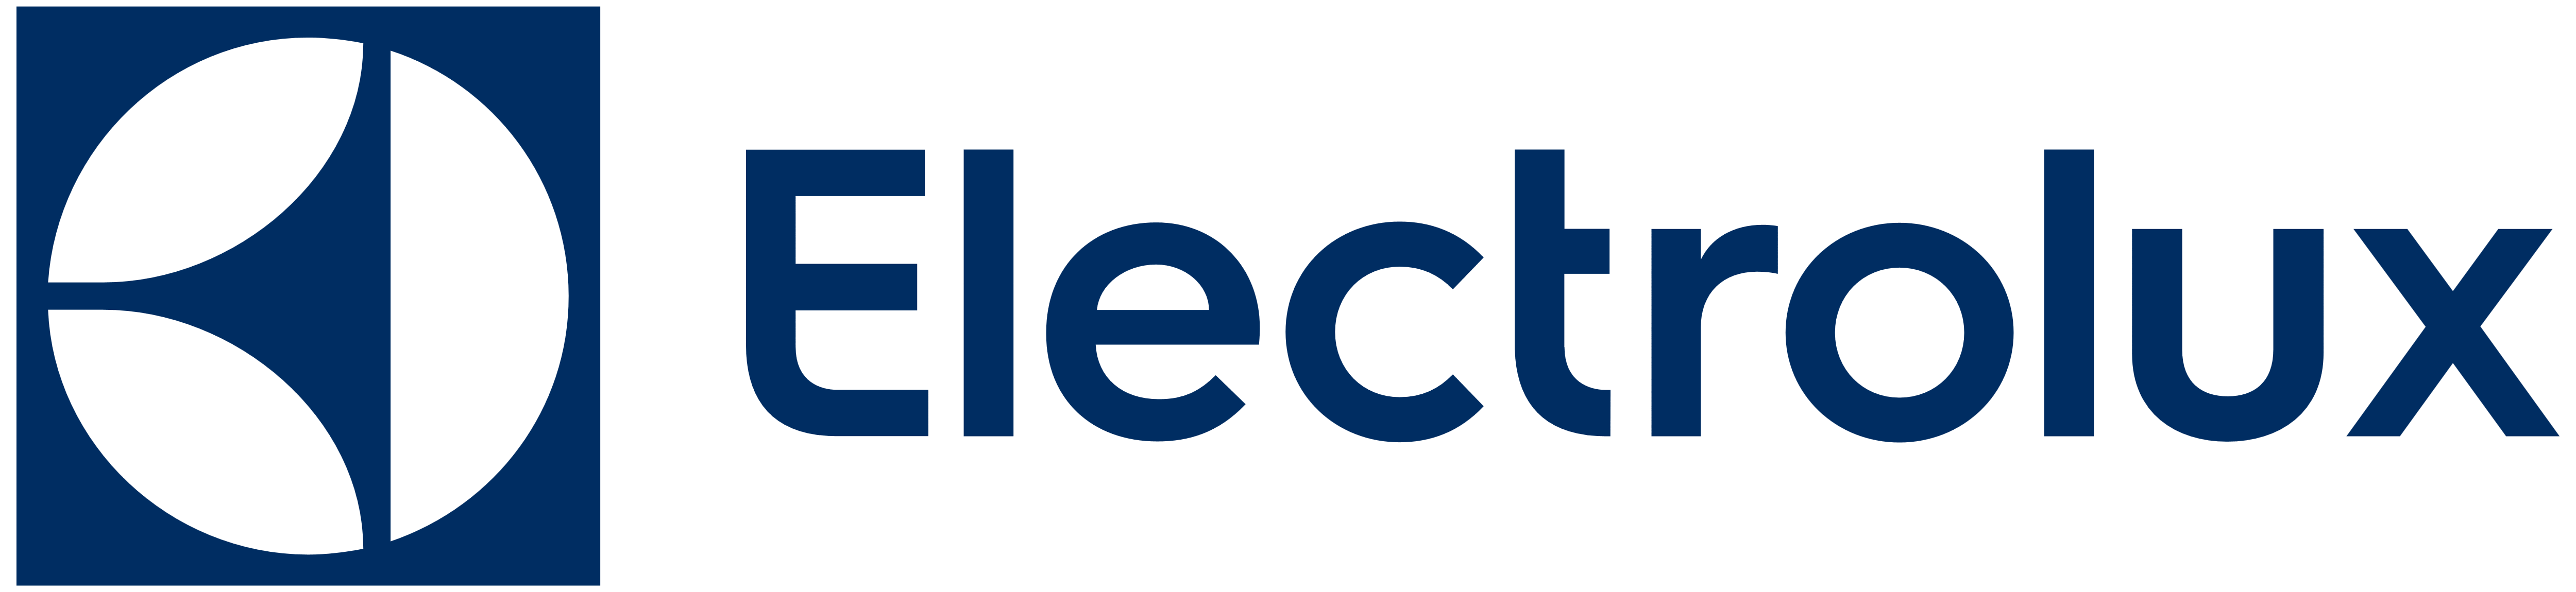 1375_electrolux-30-.png